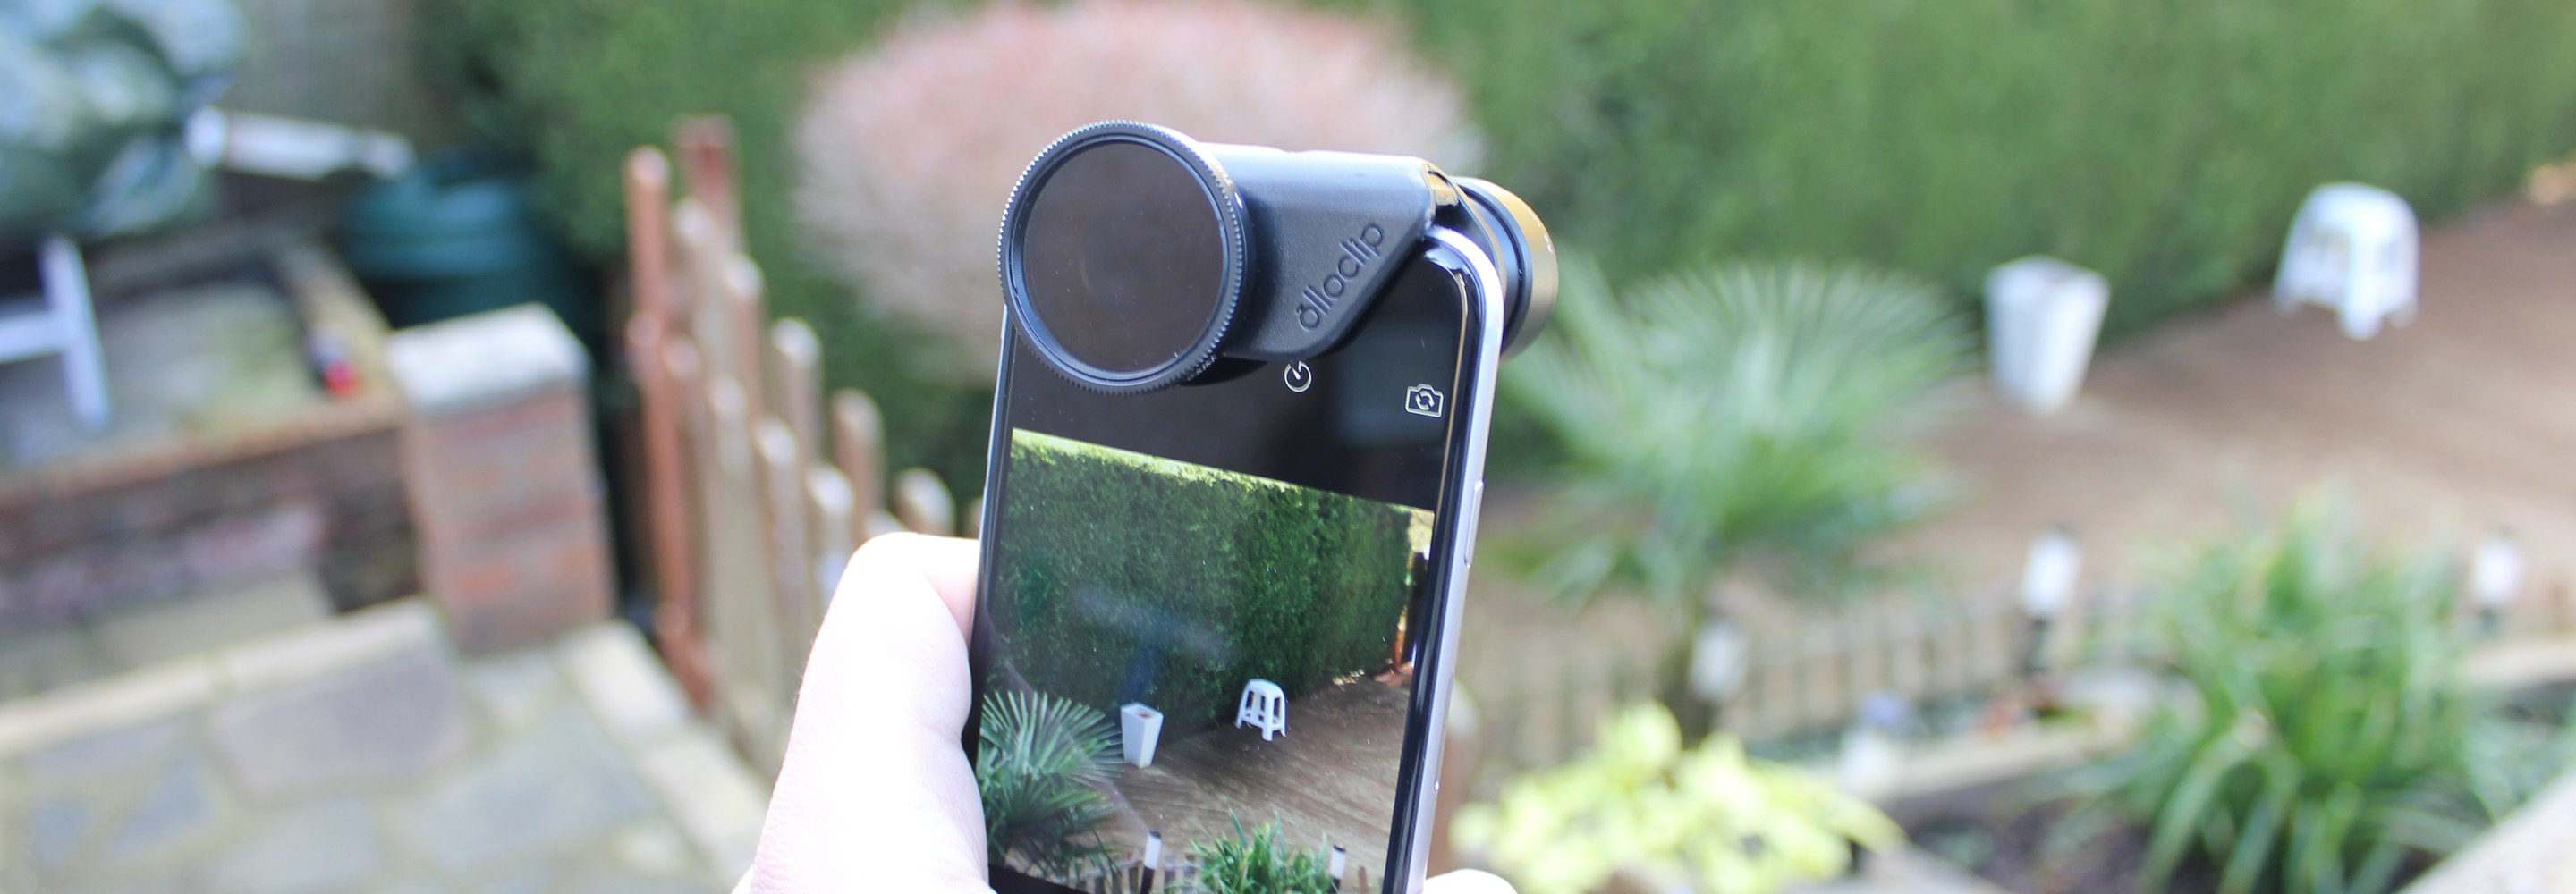 Olloclip Telephoto & CPL Lens Review: Take Better Distant Photos With iPhone 6